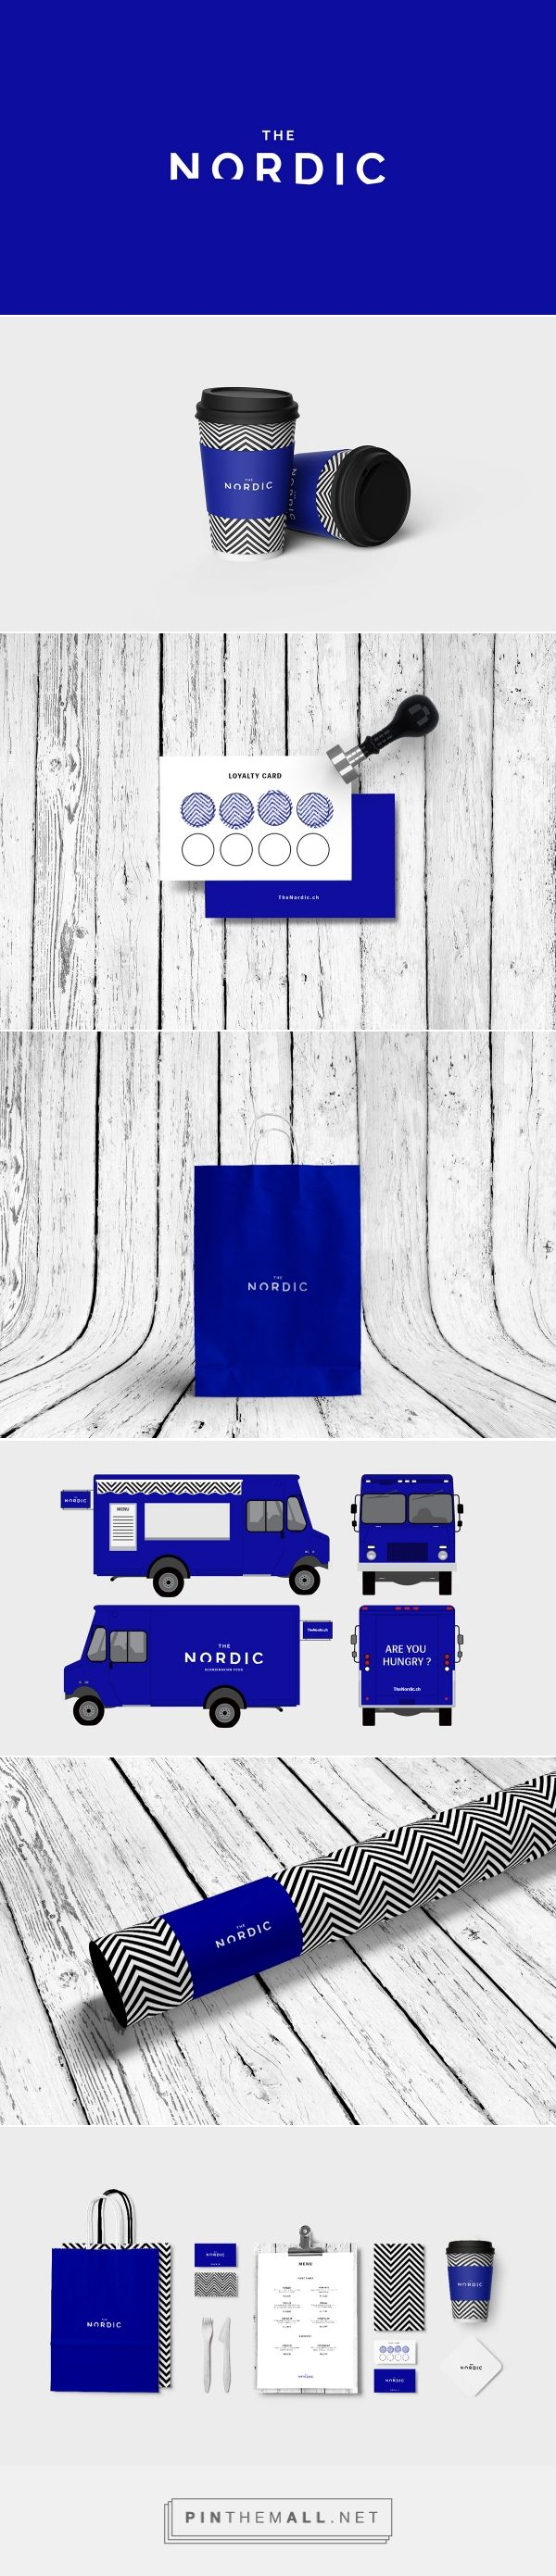 The Nordic packaging branding on Behance by David Massara Lausanne, Switzerland curated by Packaging Diva PD. Design represents  minimalist, timeless and constat of the nordic culture. Logotype was custom designed in bold, timeless sans-serif typeface with negative space of the water/boreal aurore. Moved away from feminine tones with bright blue retaining the charm of the far north.